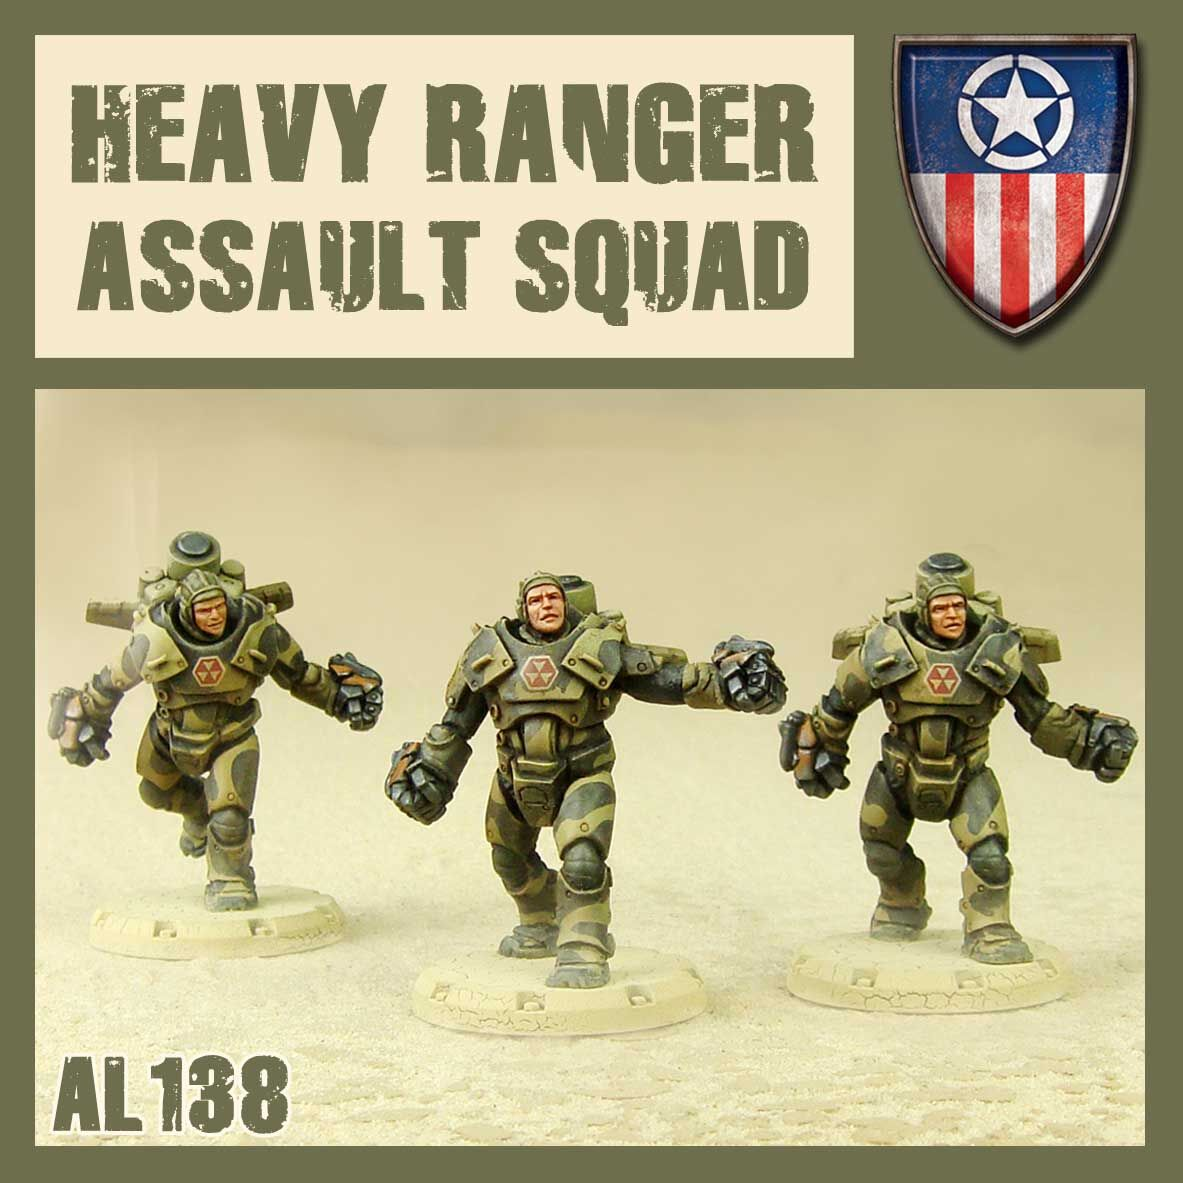 Heavy Ranger Assault Squad